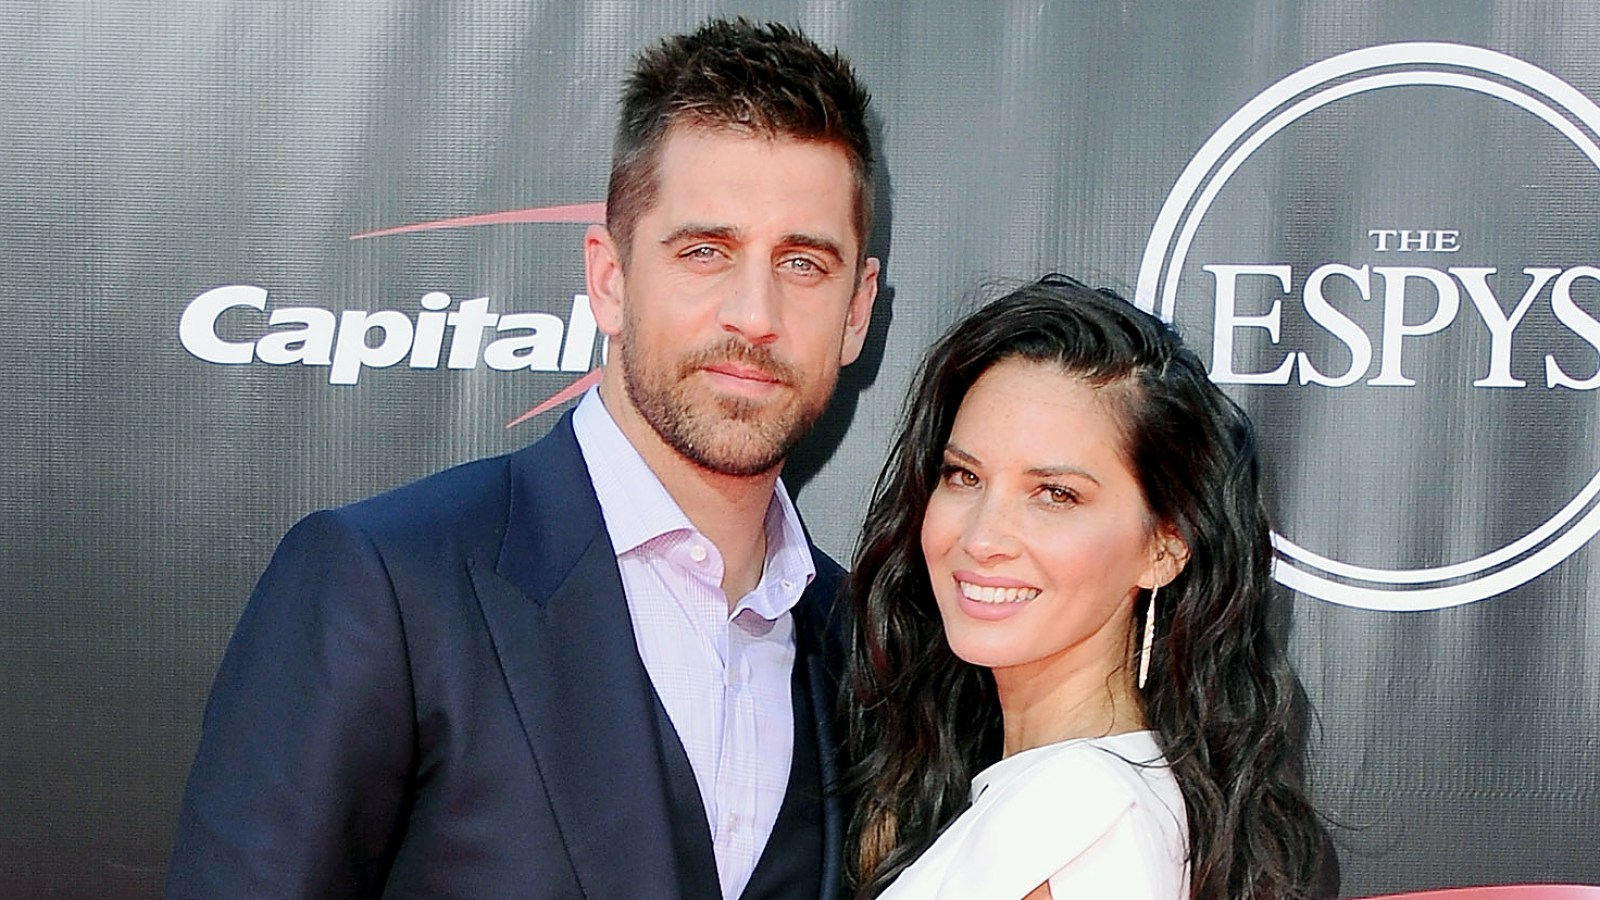 Olivia Munn Opens Up About Aaron Rodgers and His Family Drama